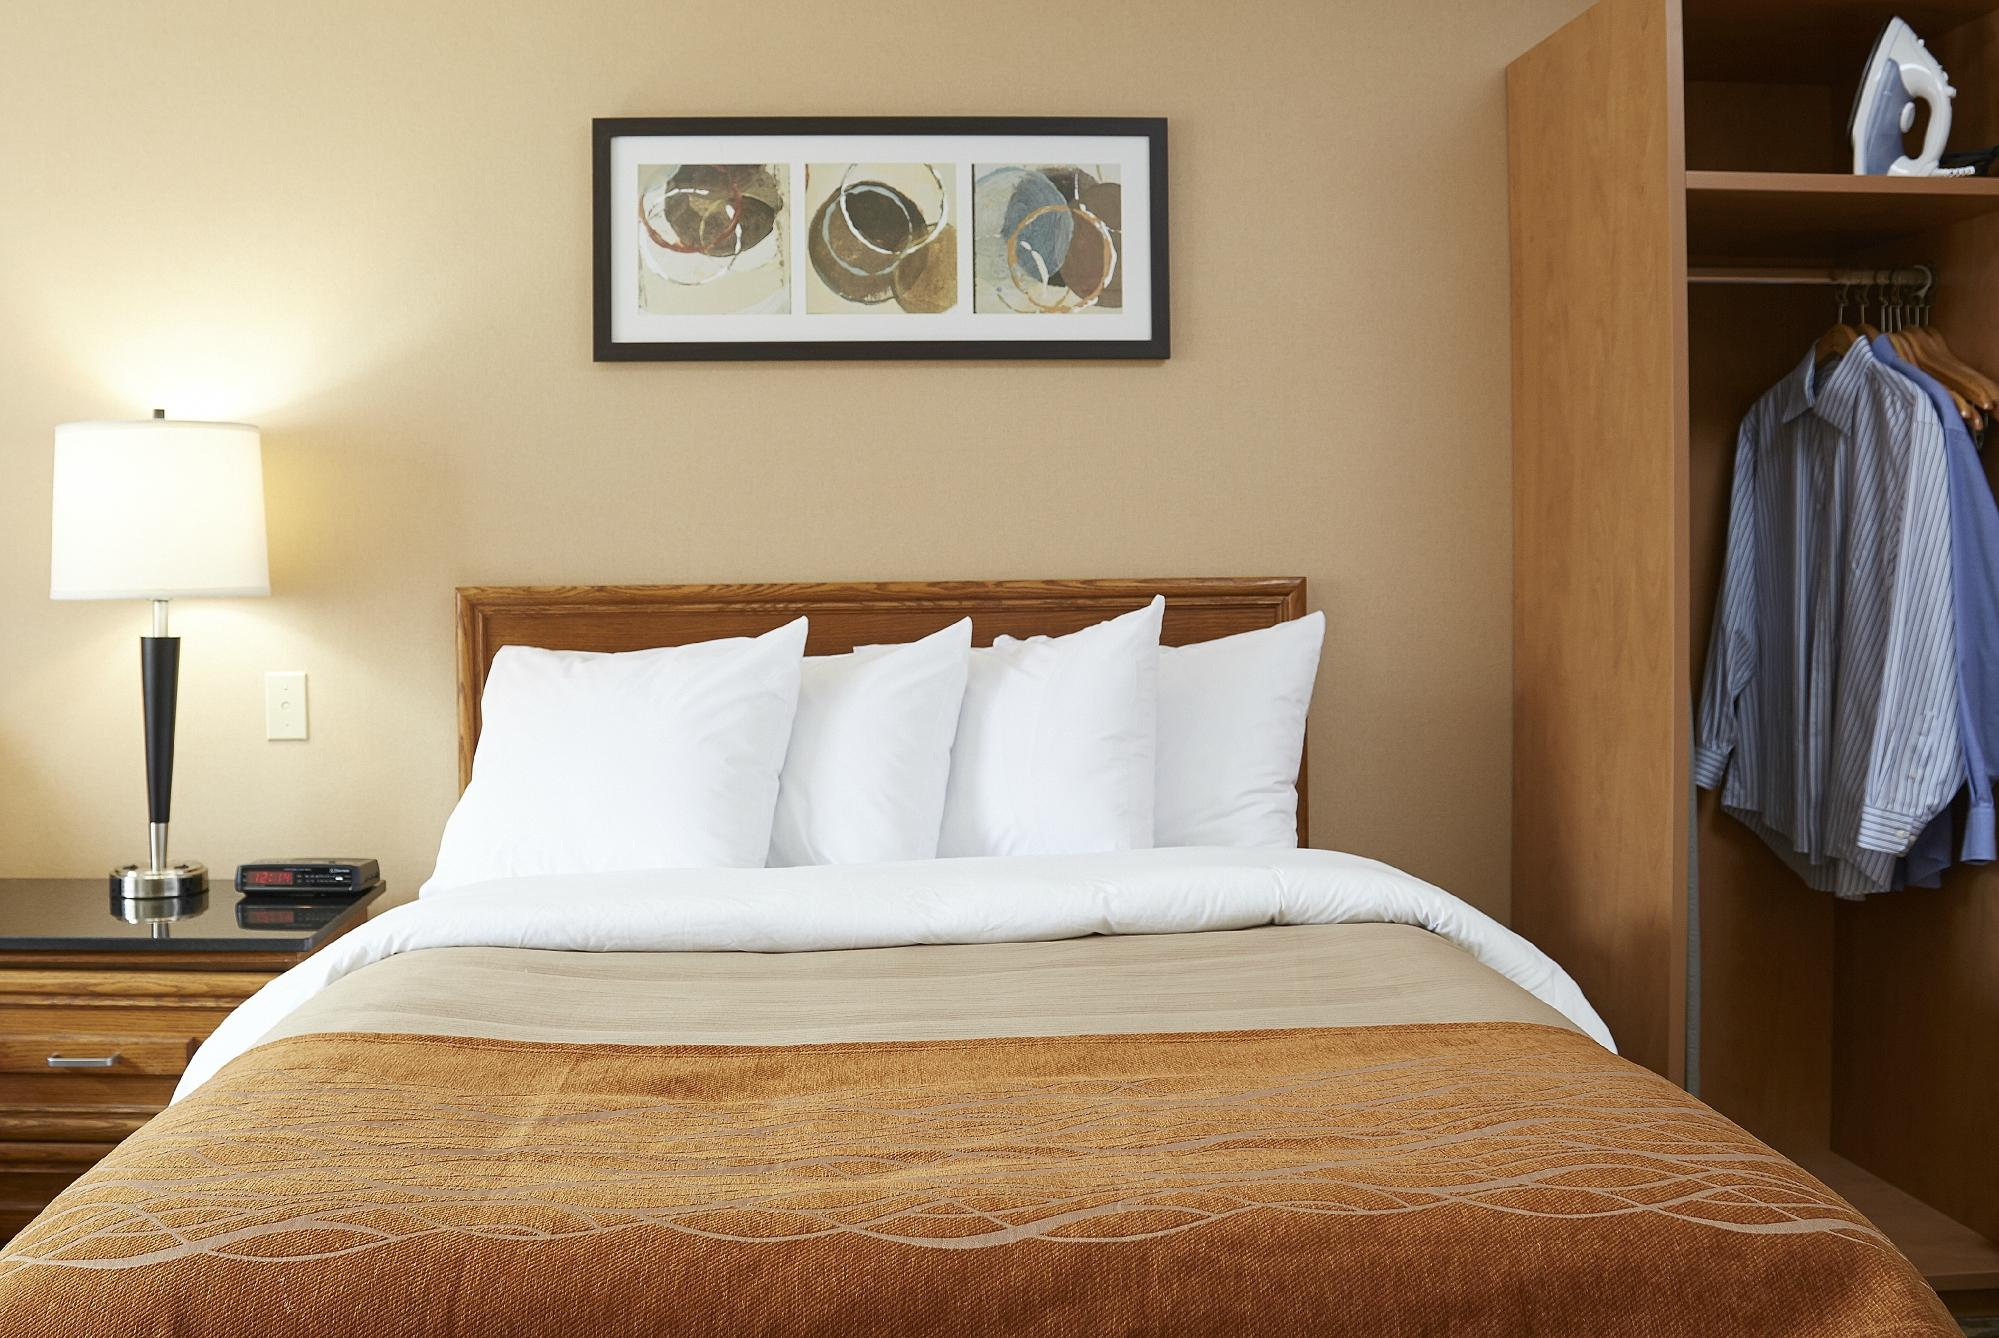 https://www.hotelsbyday.com/_data/default-hotel_image/2/10428/comfort-inn-amherst-1.jpg